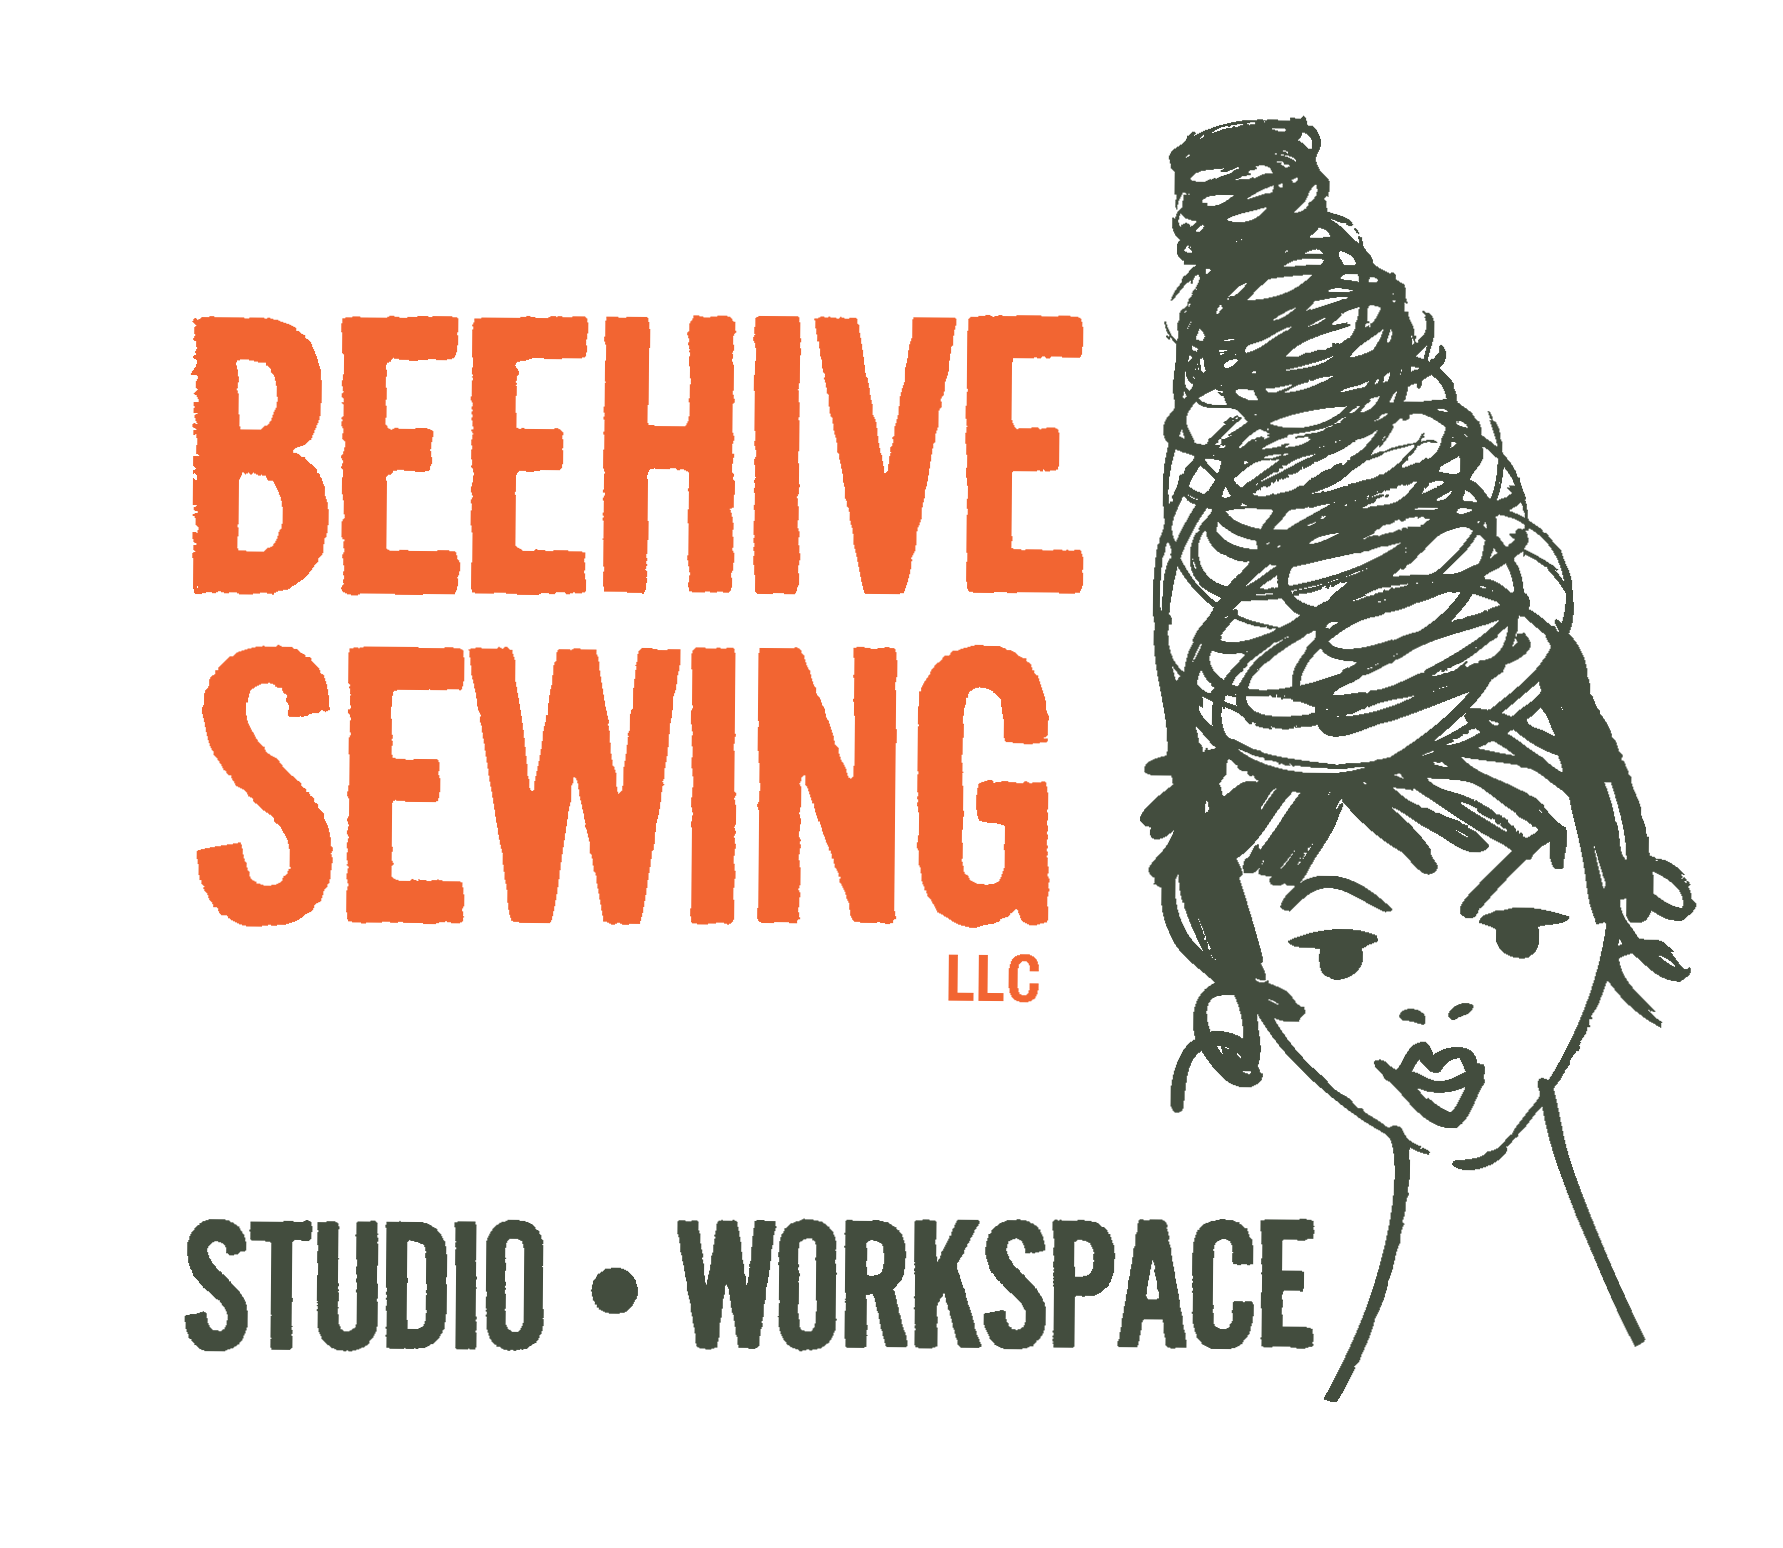 Sewing drawing supply. Supplies notions beehive studio